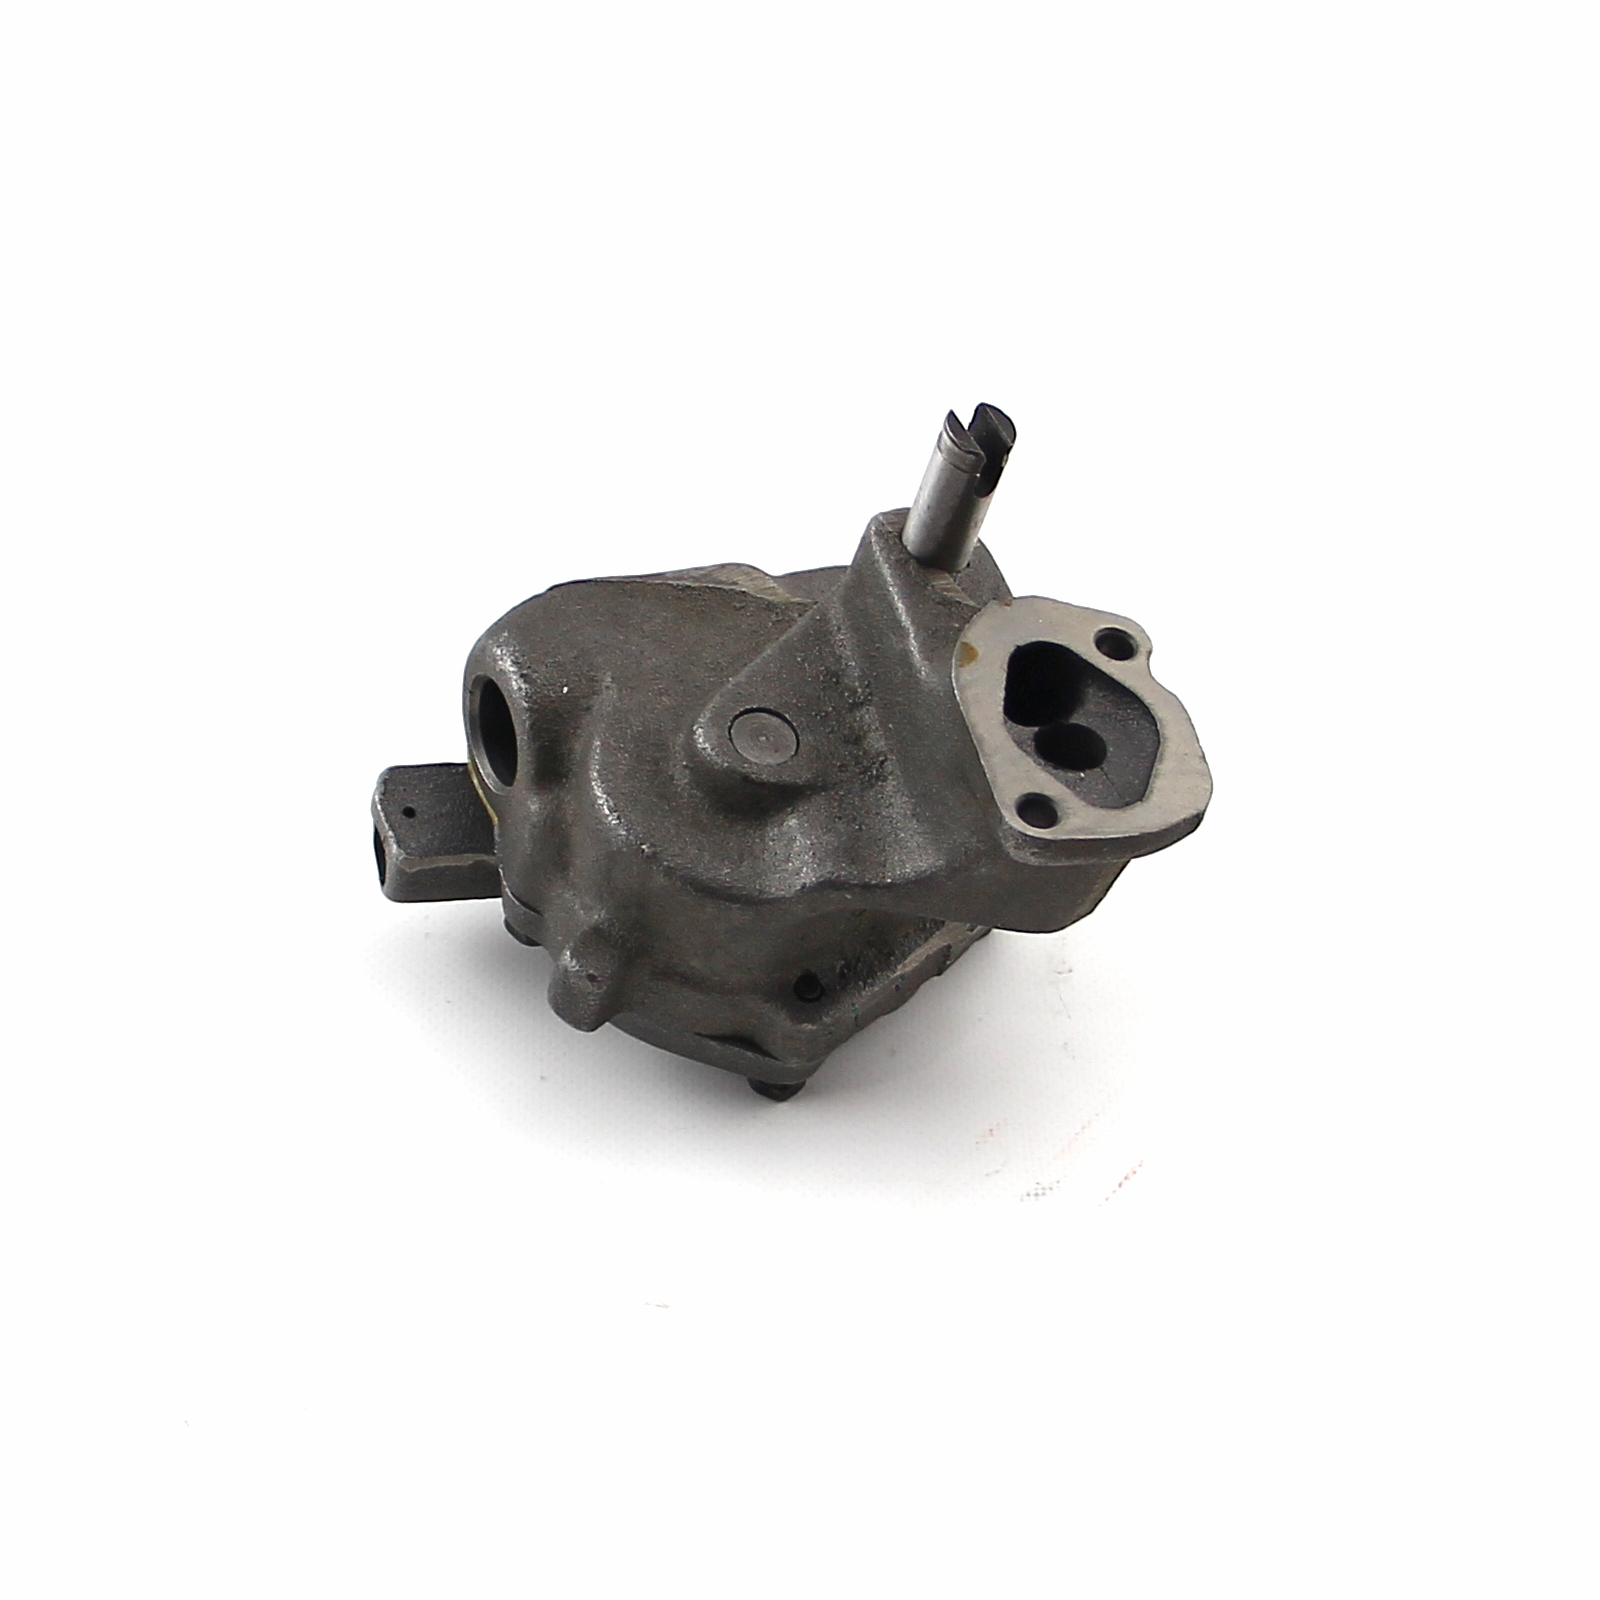 Chevy BBC 396 454 Standard Volume Oil Pump